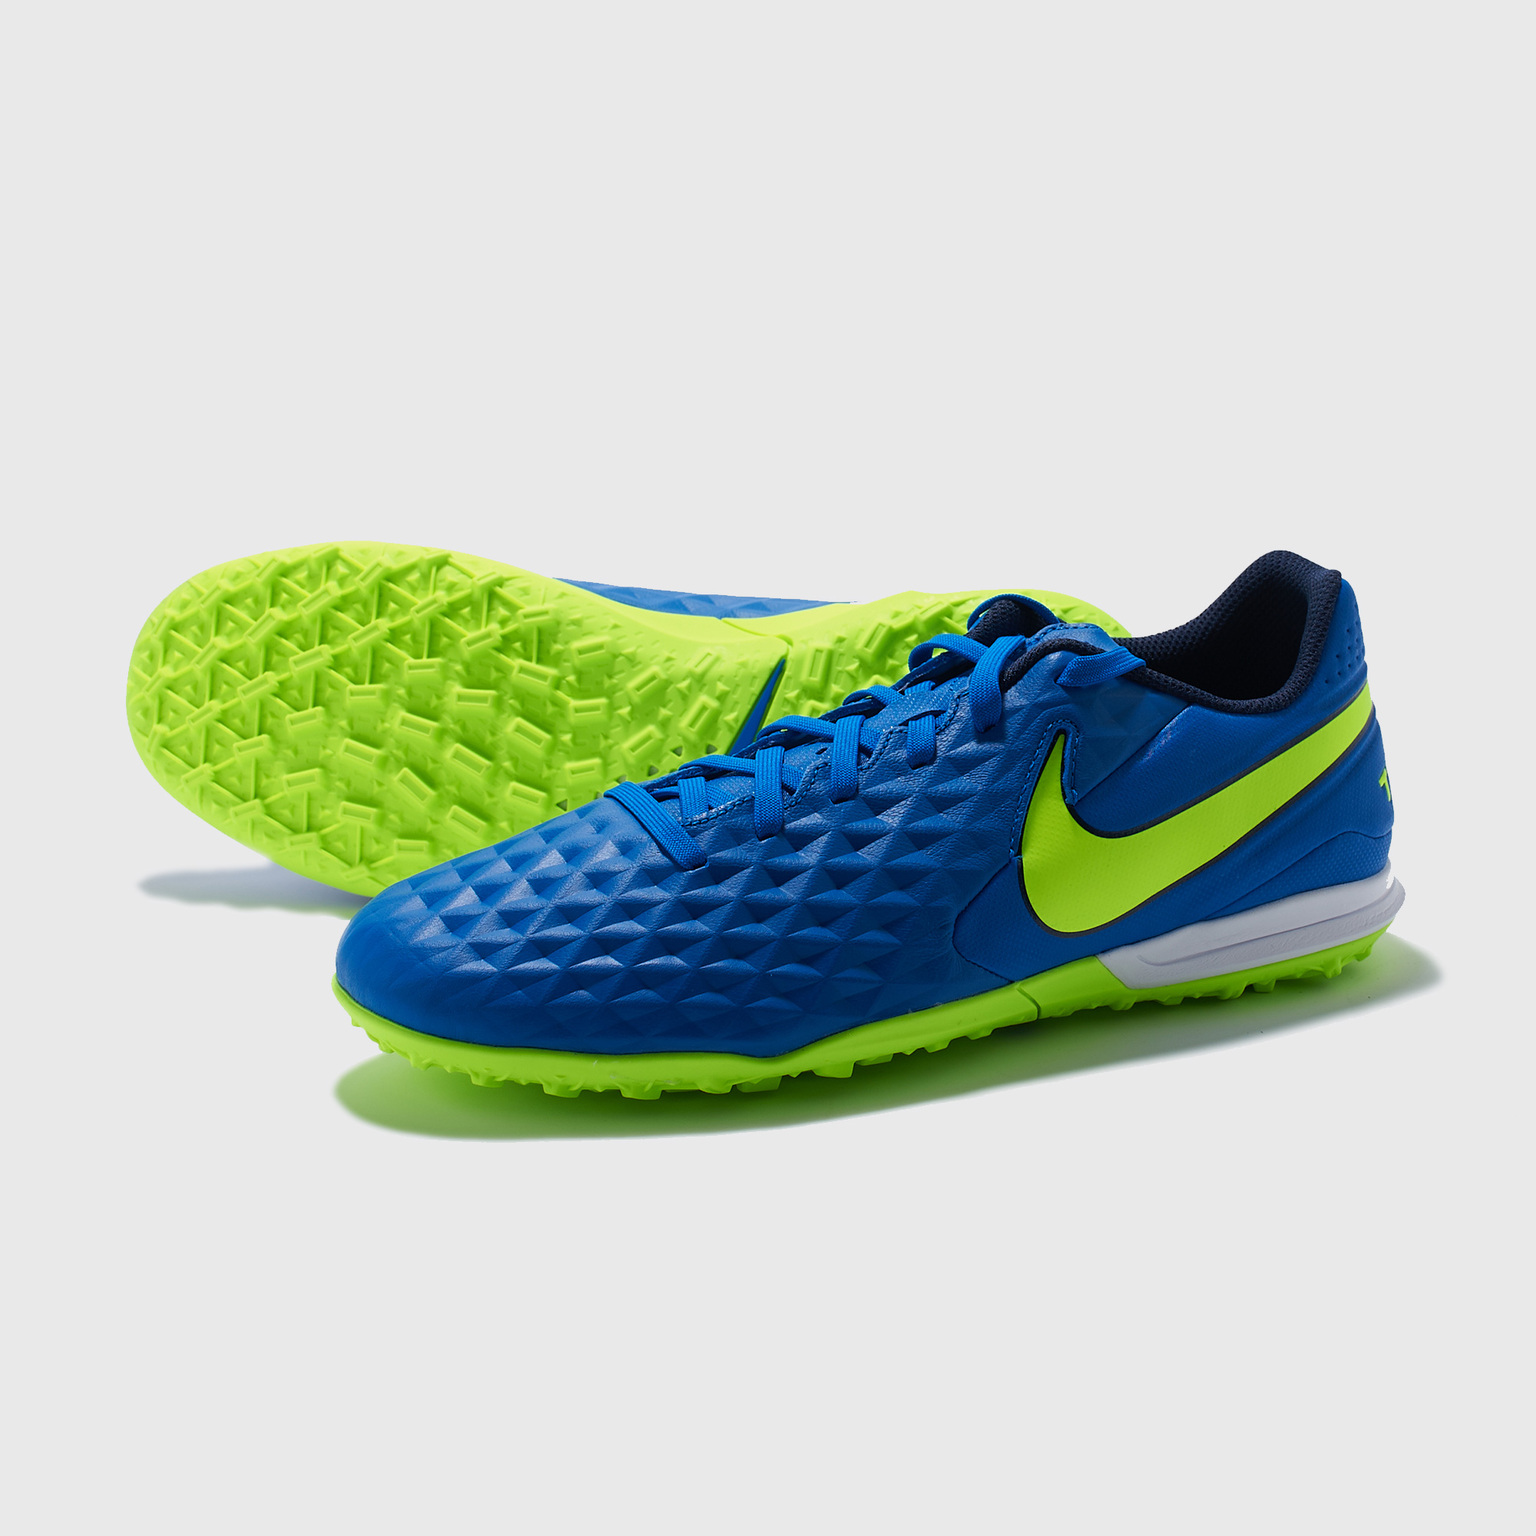 Шиповки Nike Legend 8 Academy TF AT6100-474 шиповки детские nike legend 8 academy tf at5736 606